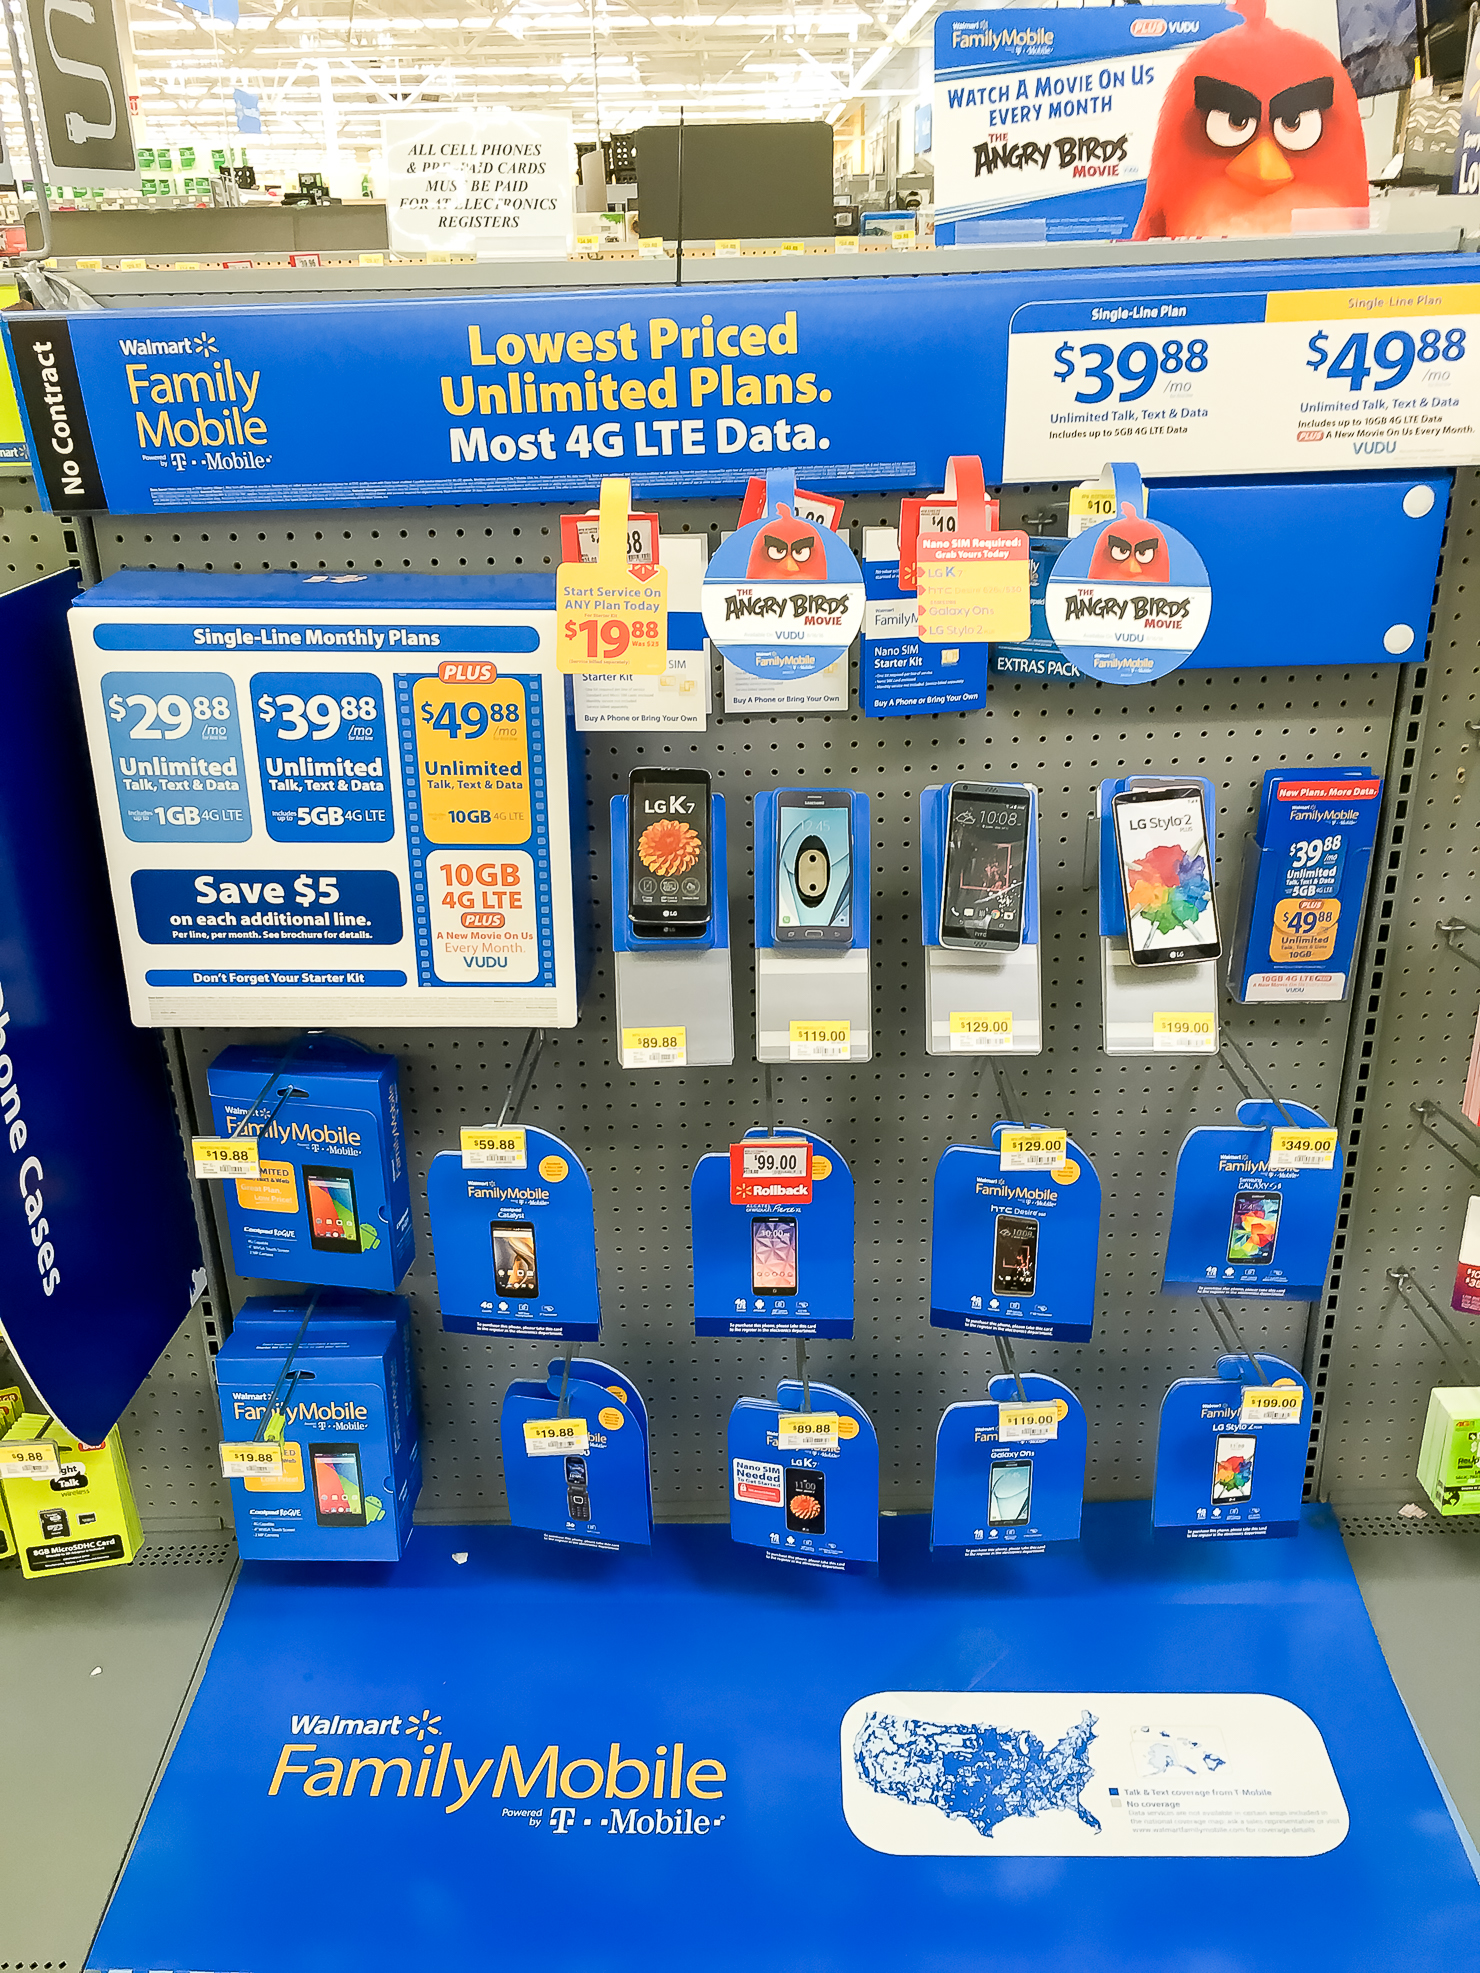 Walmart-Family-Mobile-Plus-HTC-Desire-Angry-Birds-Mask-DIY-Angry-Birds-Movie-11